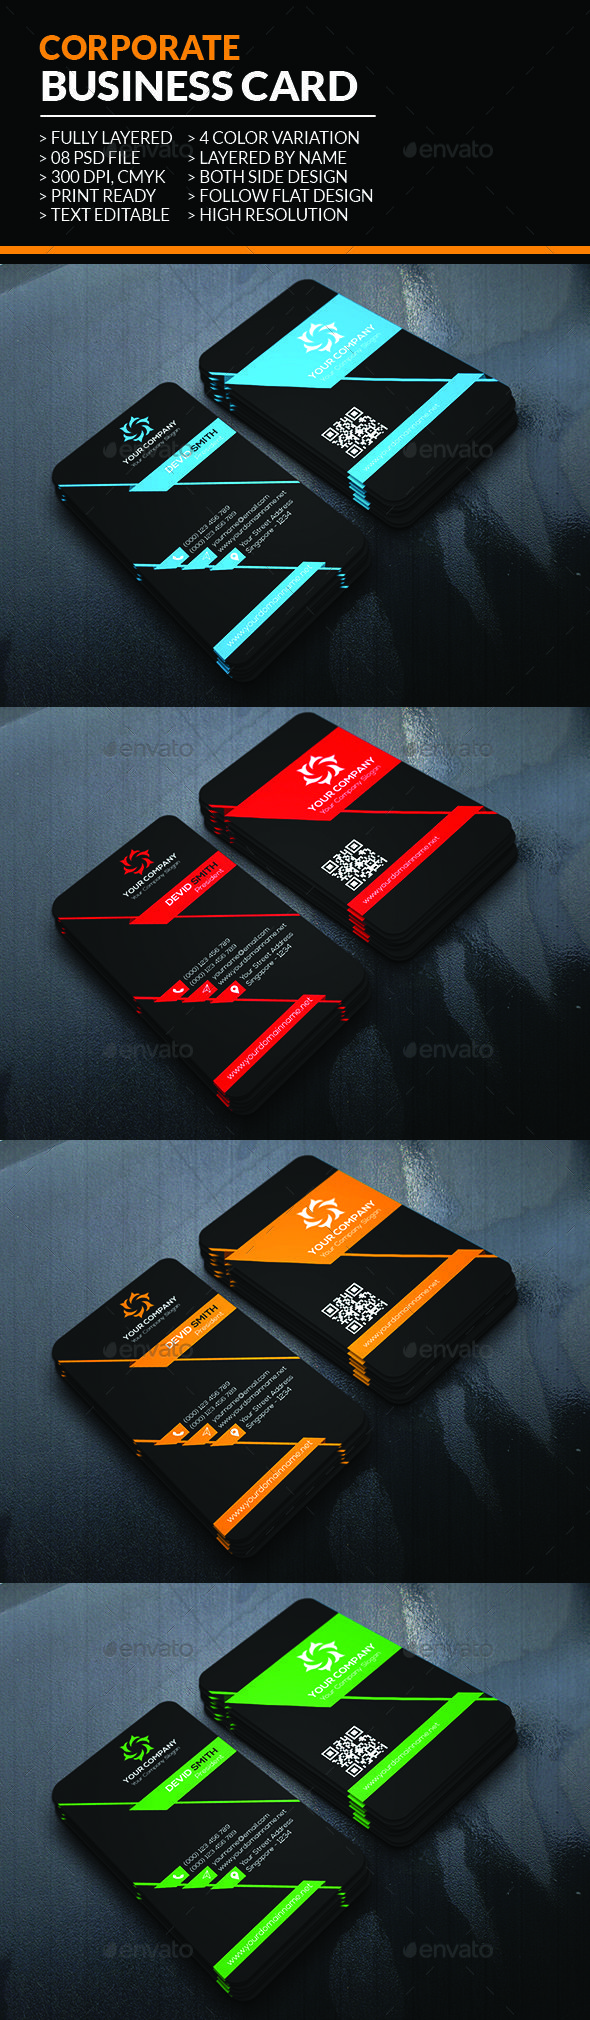 Corporate #Business #Card - Corporate Business Cards Download here: https://graphicriver.net/item/corporate-business-card/19608966?ref=alena994